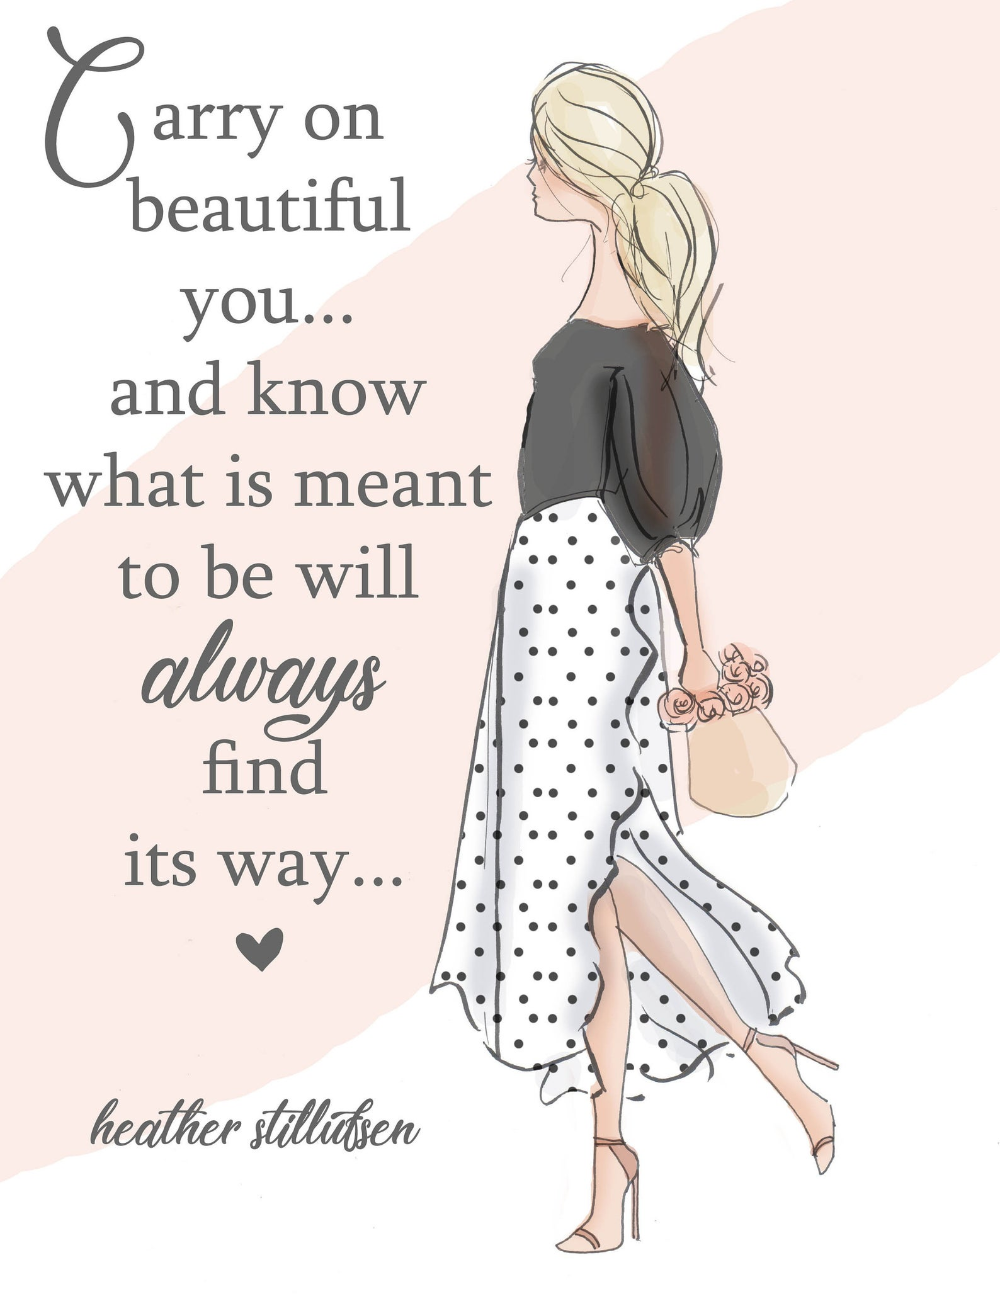 Carry On Beautiful You Wall Art For Women Cards For Women Wall Art Print Motivational Art Print Wall Art Print Heather Stillufsen Quotes Heather Stillufsen Motivational Art Prints